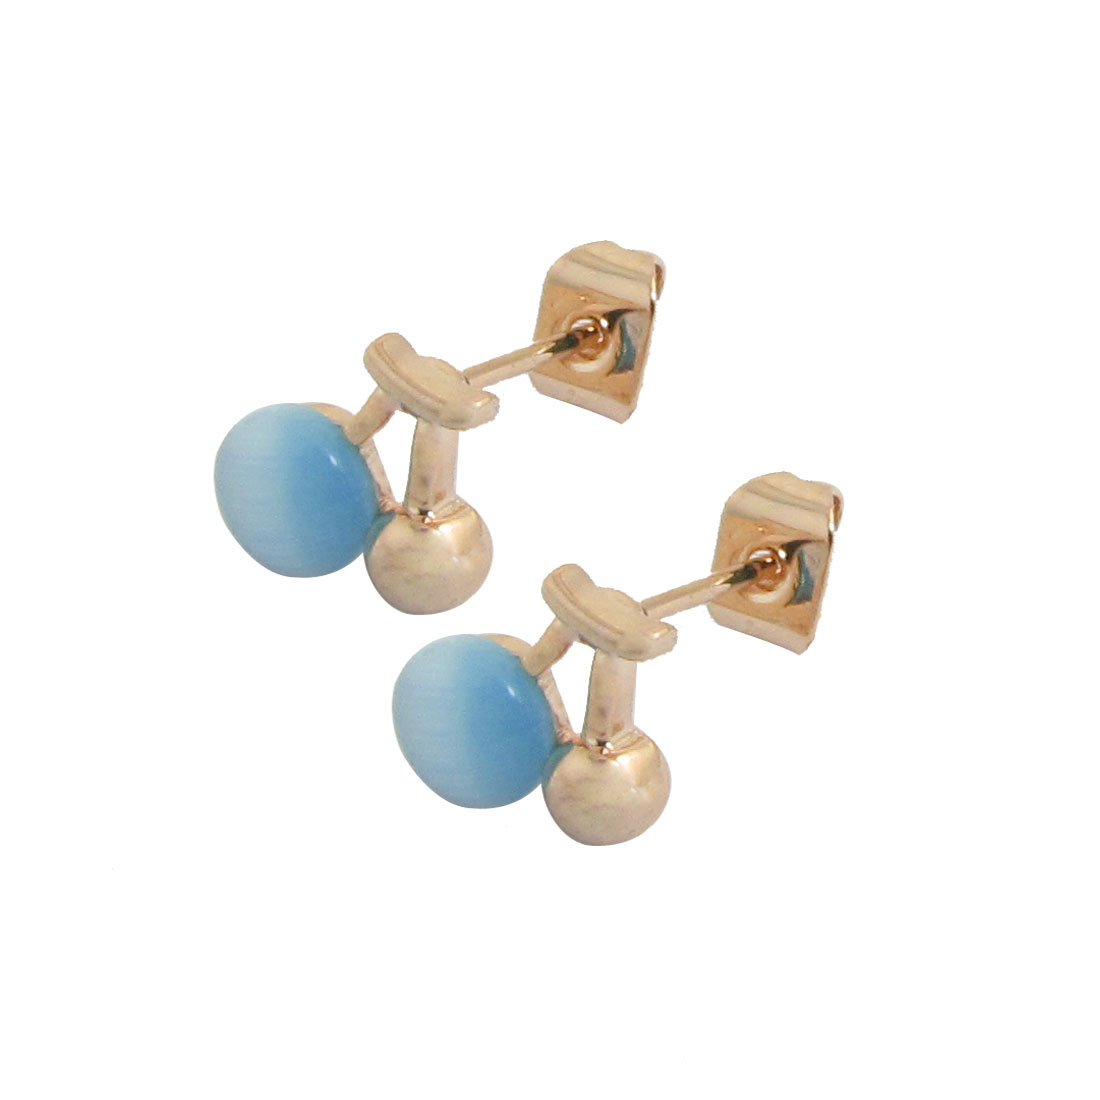 2 Pcs Gold Tone Blue Cherry Fruit Ear Stud Earrings Jewelry for Woman